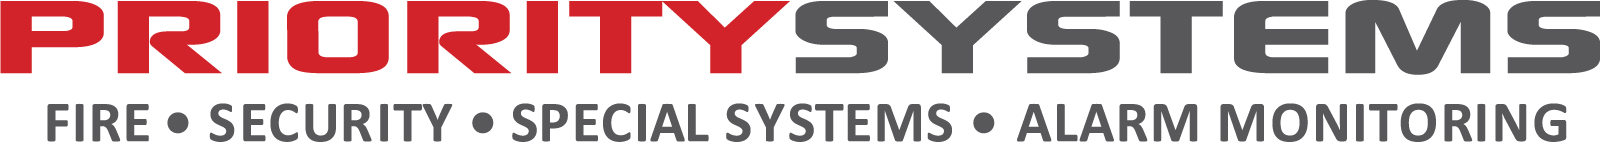 Priority Systems Logo